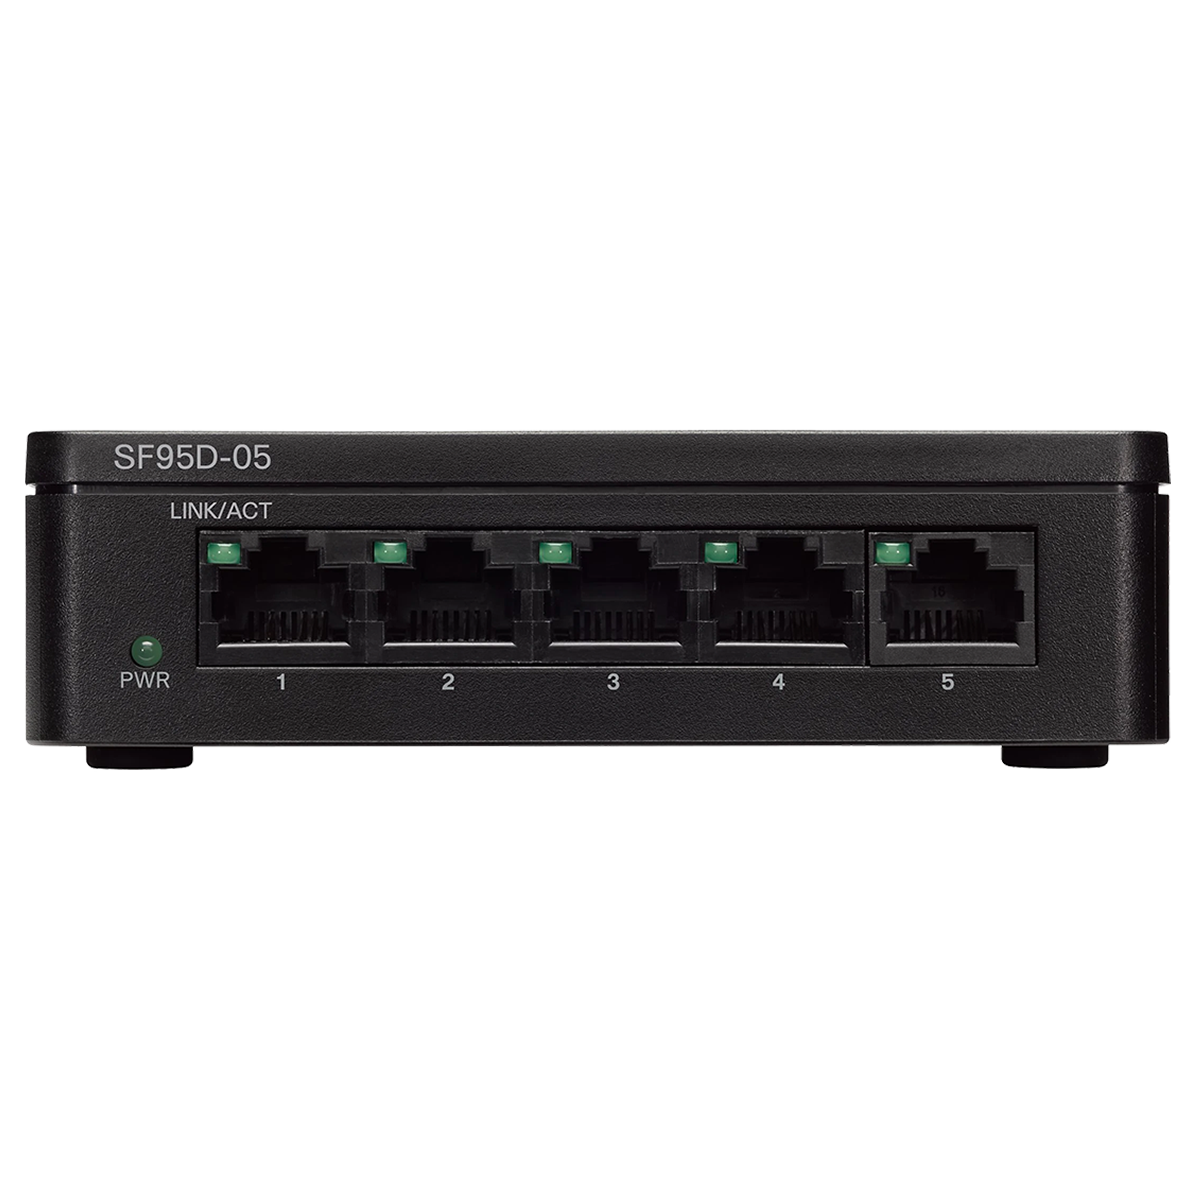 Cisco 95 Series Unmanaged Switch (Affordable 10/100/1000-Mbps Speeds, SF95D-05-IN, Black)_1